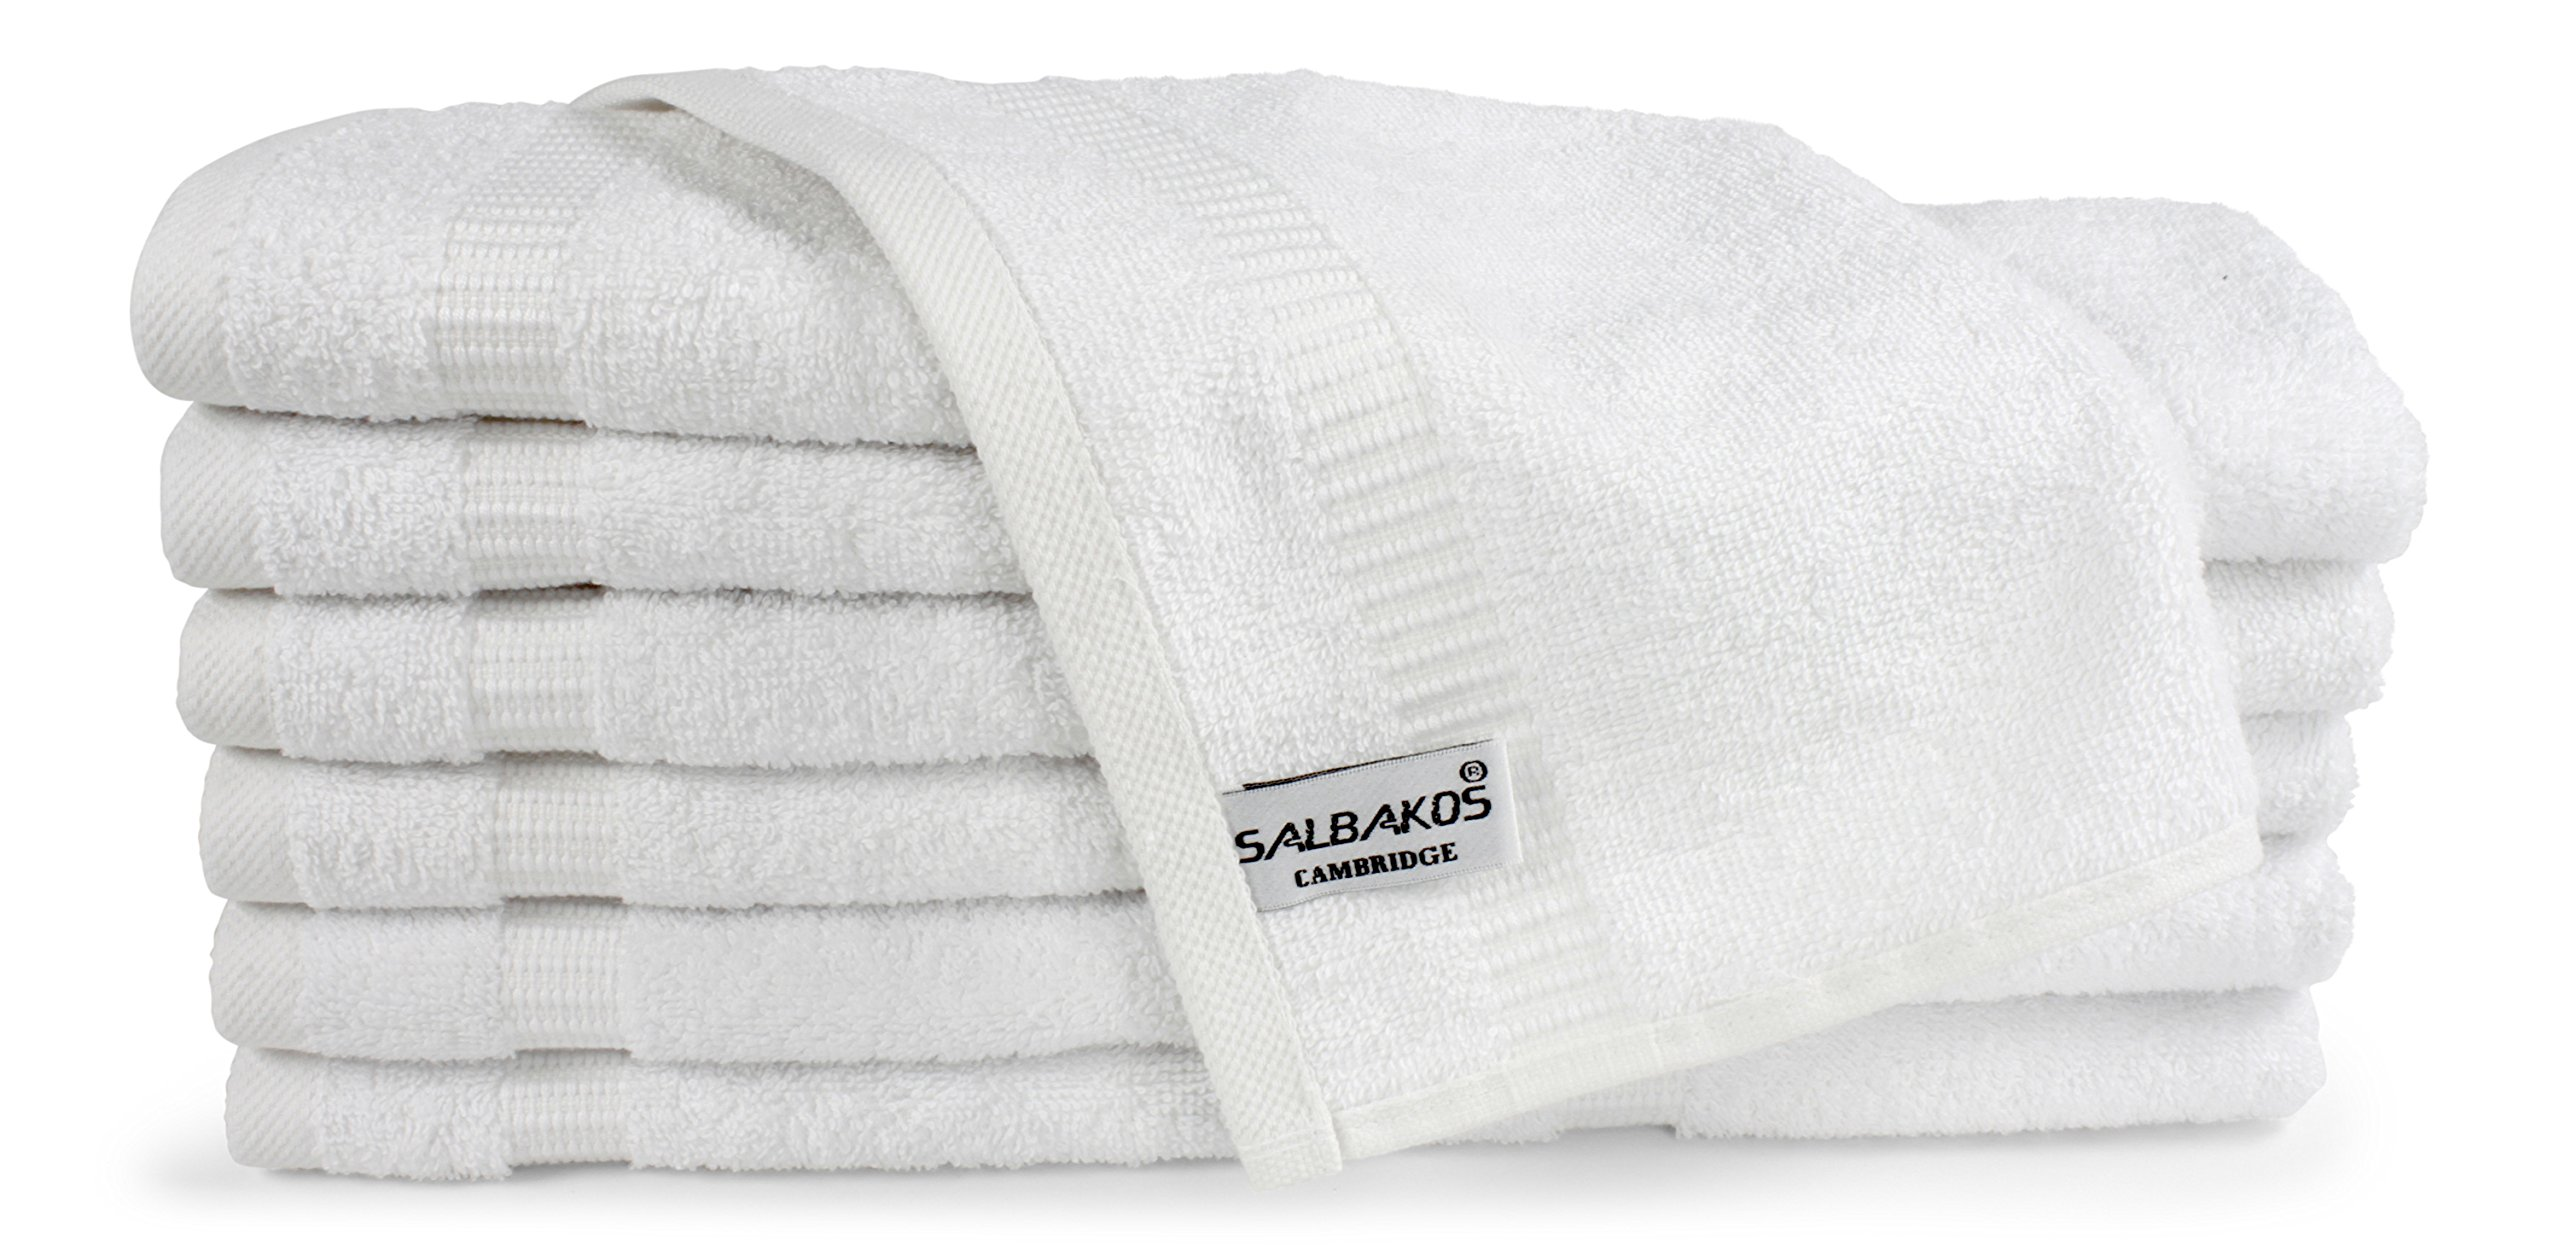 SALBAKOS Luxury Hotel and Spa Washcloths Turkish Cotton 12 Piece, Eco-Friendly Set for Bath, 13 by 13 Inches, White